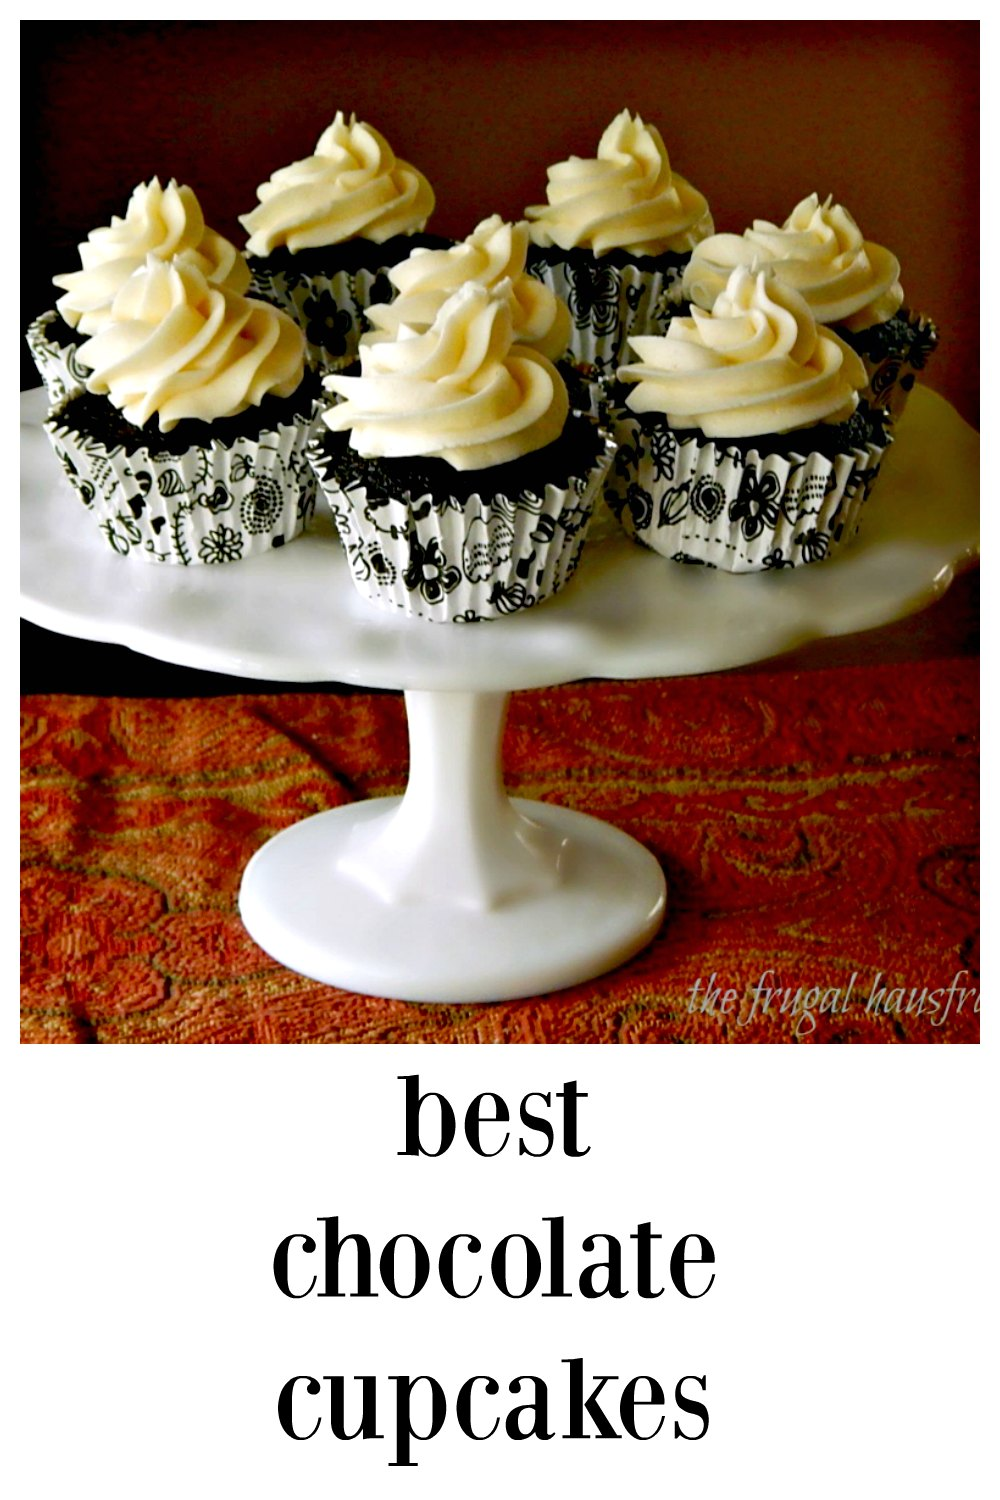 These super easy, stir together by hand cupcakes pack a deep, dark chocolate flavor! Insanely good! #Chocolate Cupcakes #BestChocolateCupcakes #ChocolateDesserts #Desserts